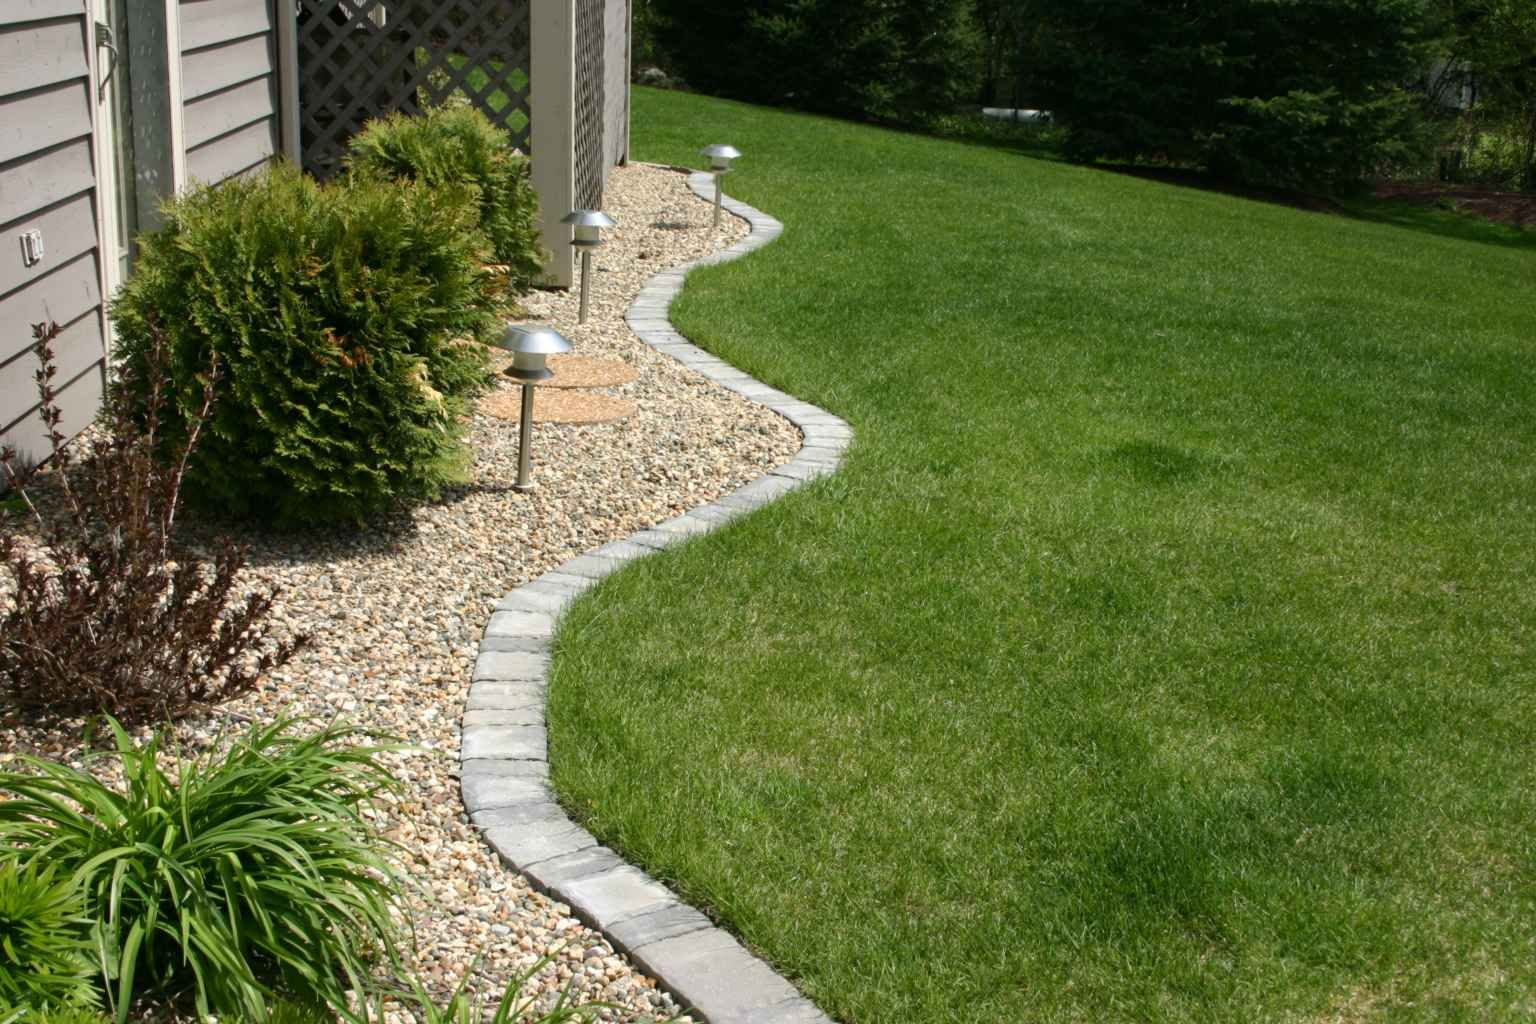 Paver Landscape Edging Images Google Search Garden Edging Landscape Edging Modern Garden